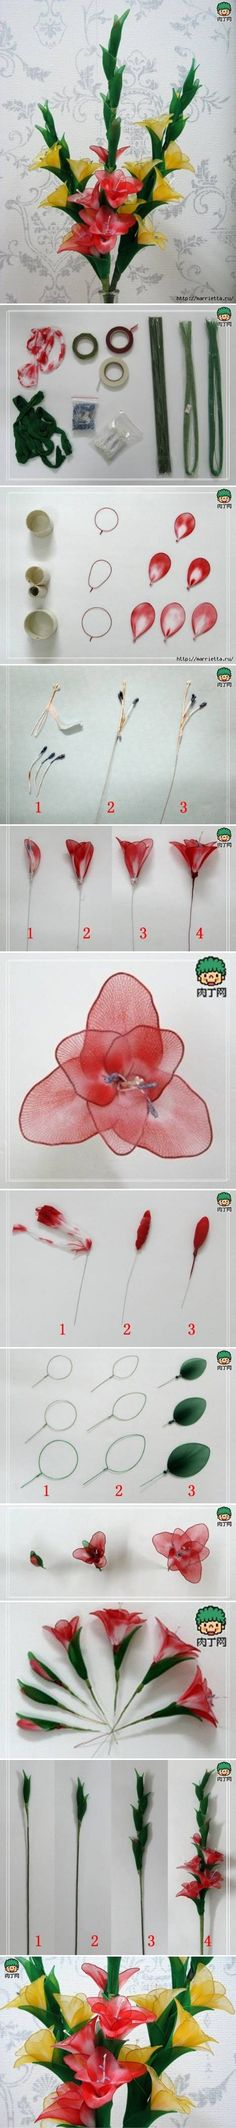 DIY Nylon Galdiolus Flower DIY Nylon Galdiolus Flower